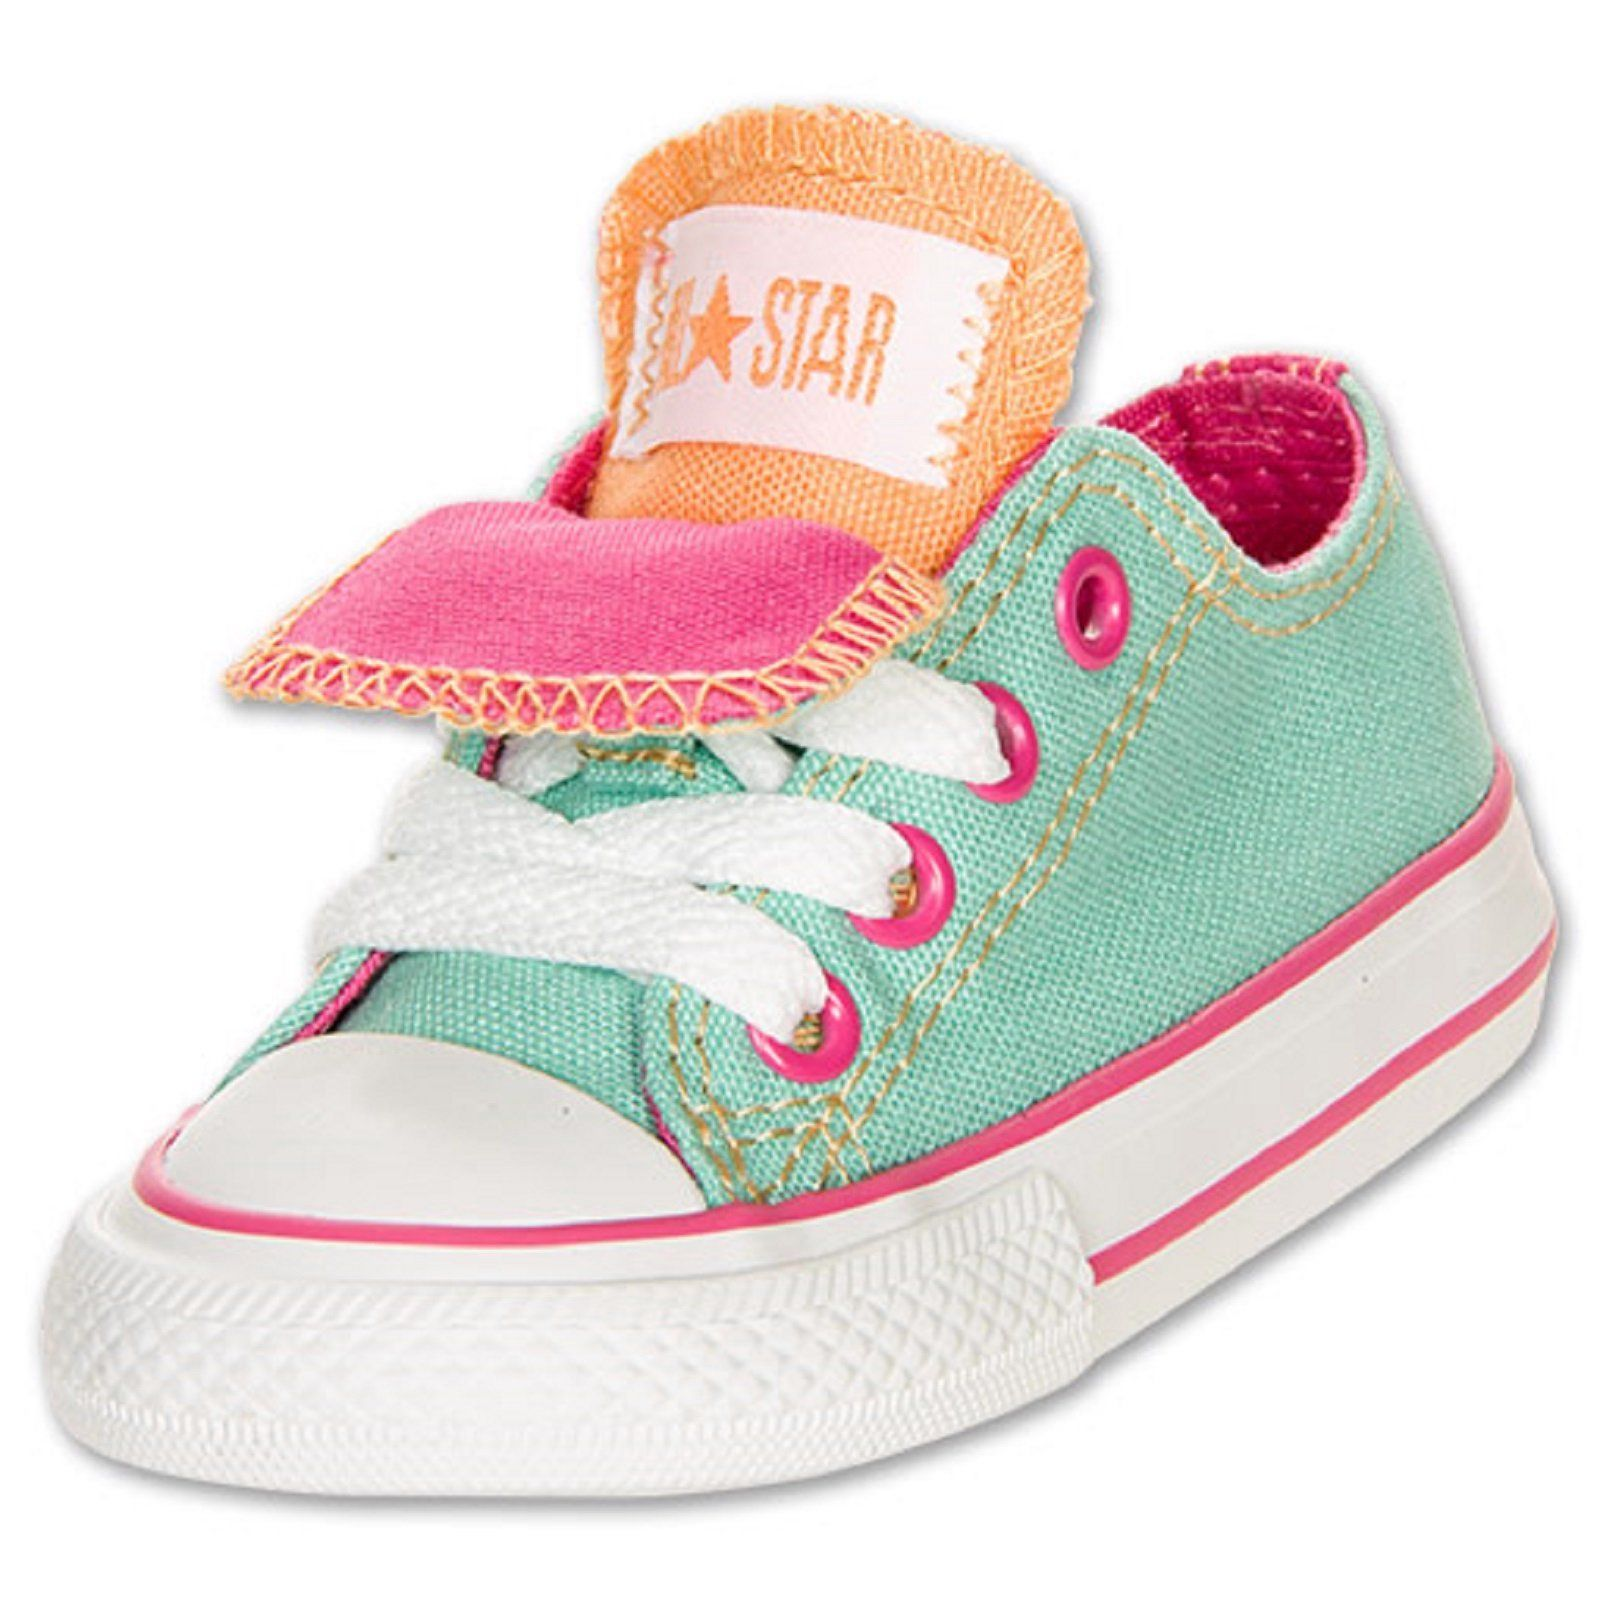 on sale be524 1eb79 Baby Girls Shoes Converse Chuck Taylor Double Tongue Ox Toddler Sizes Aqua  Pink   eBay